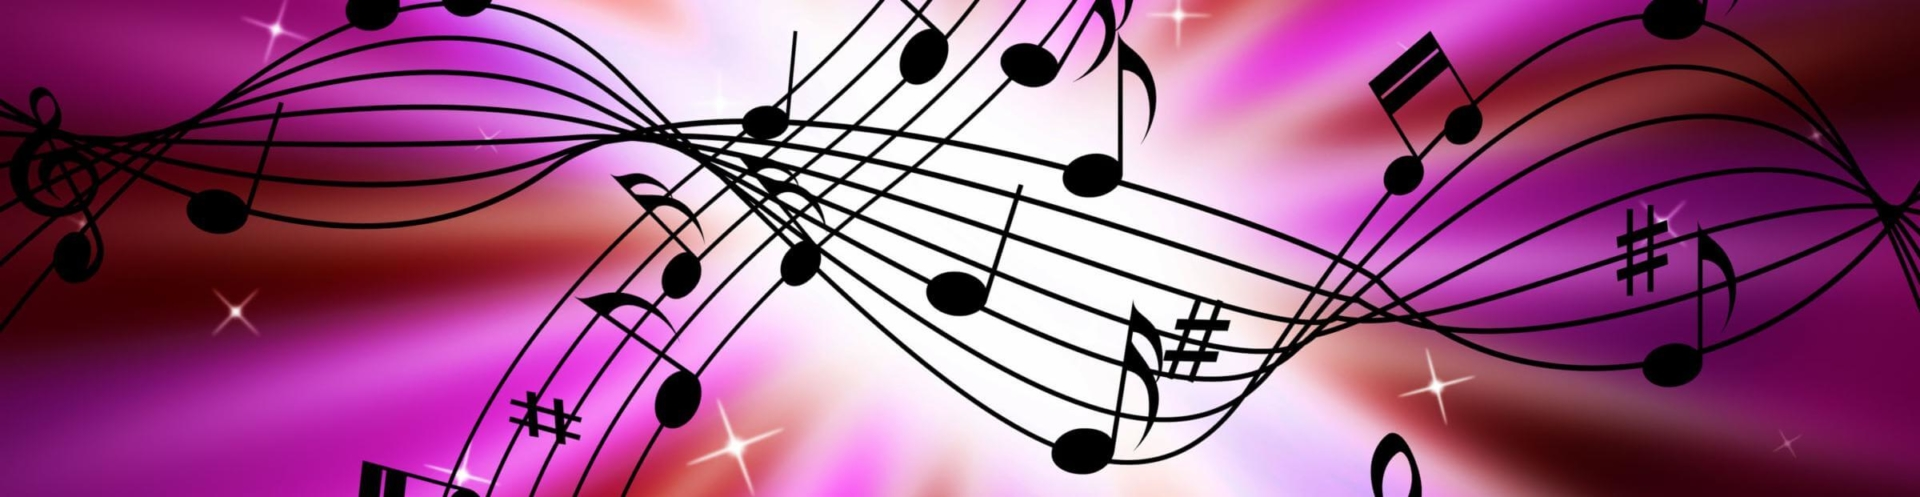 music notes in a purple background